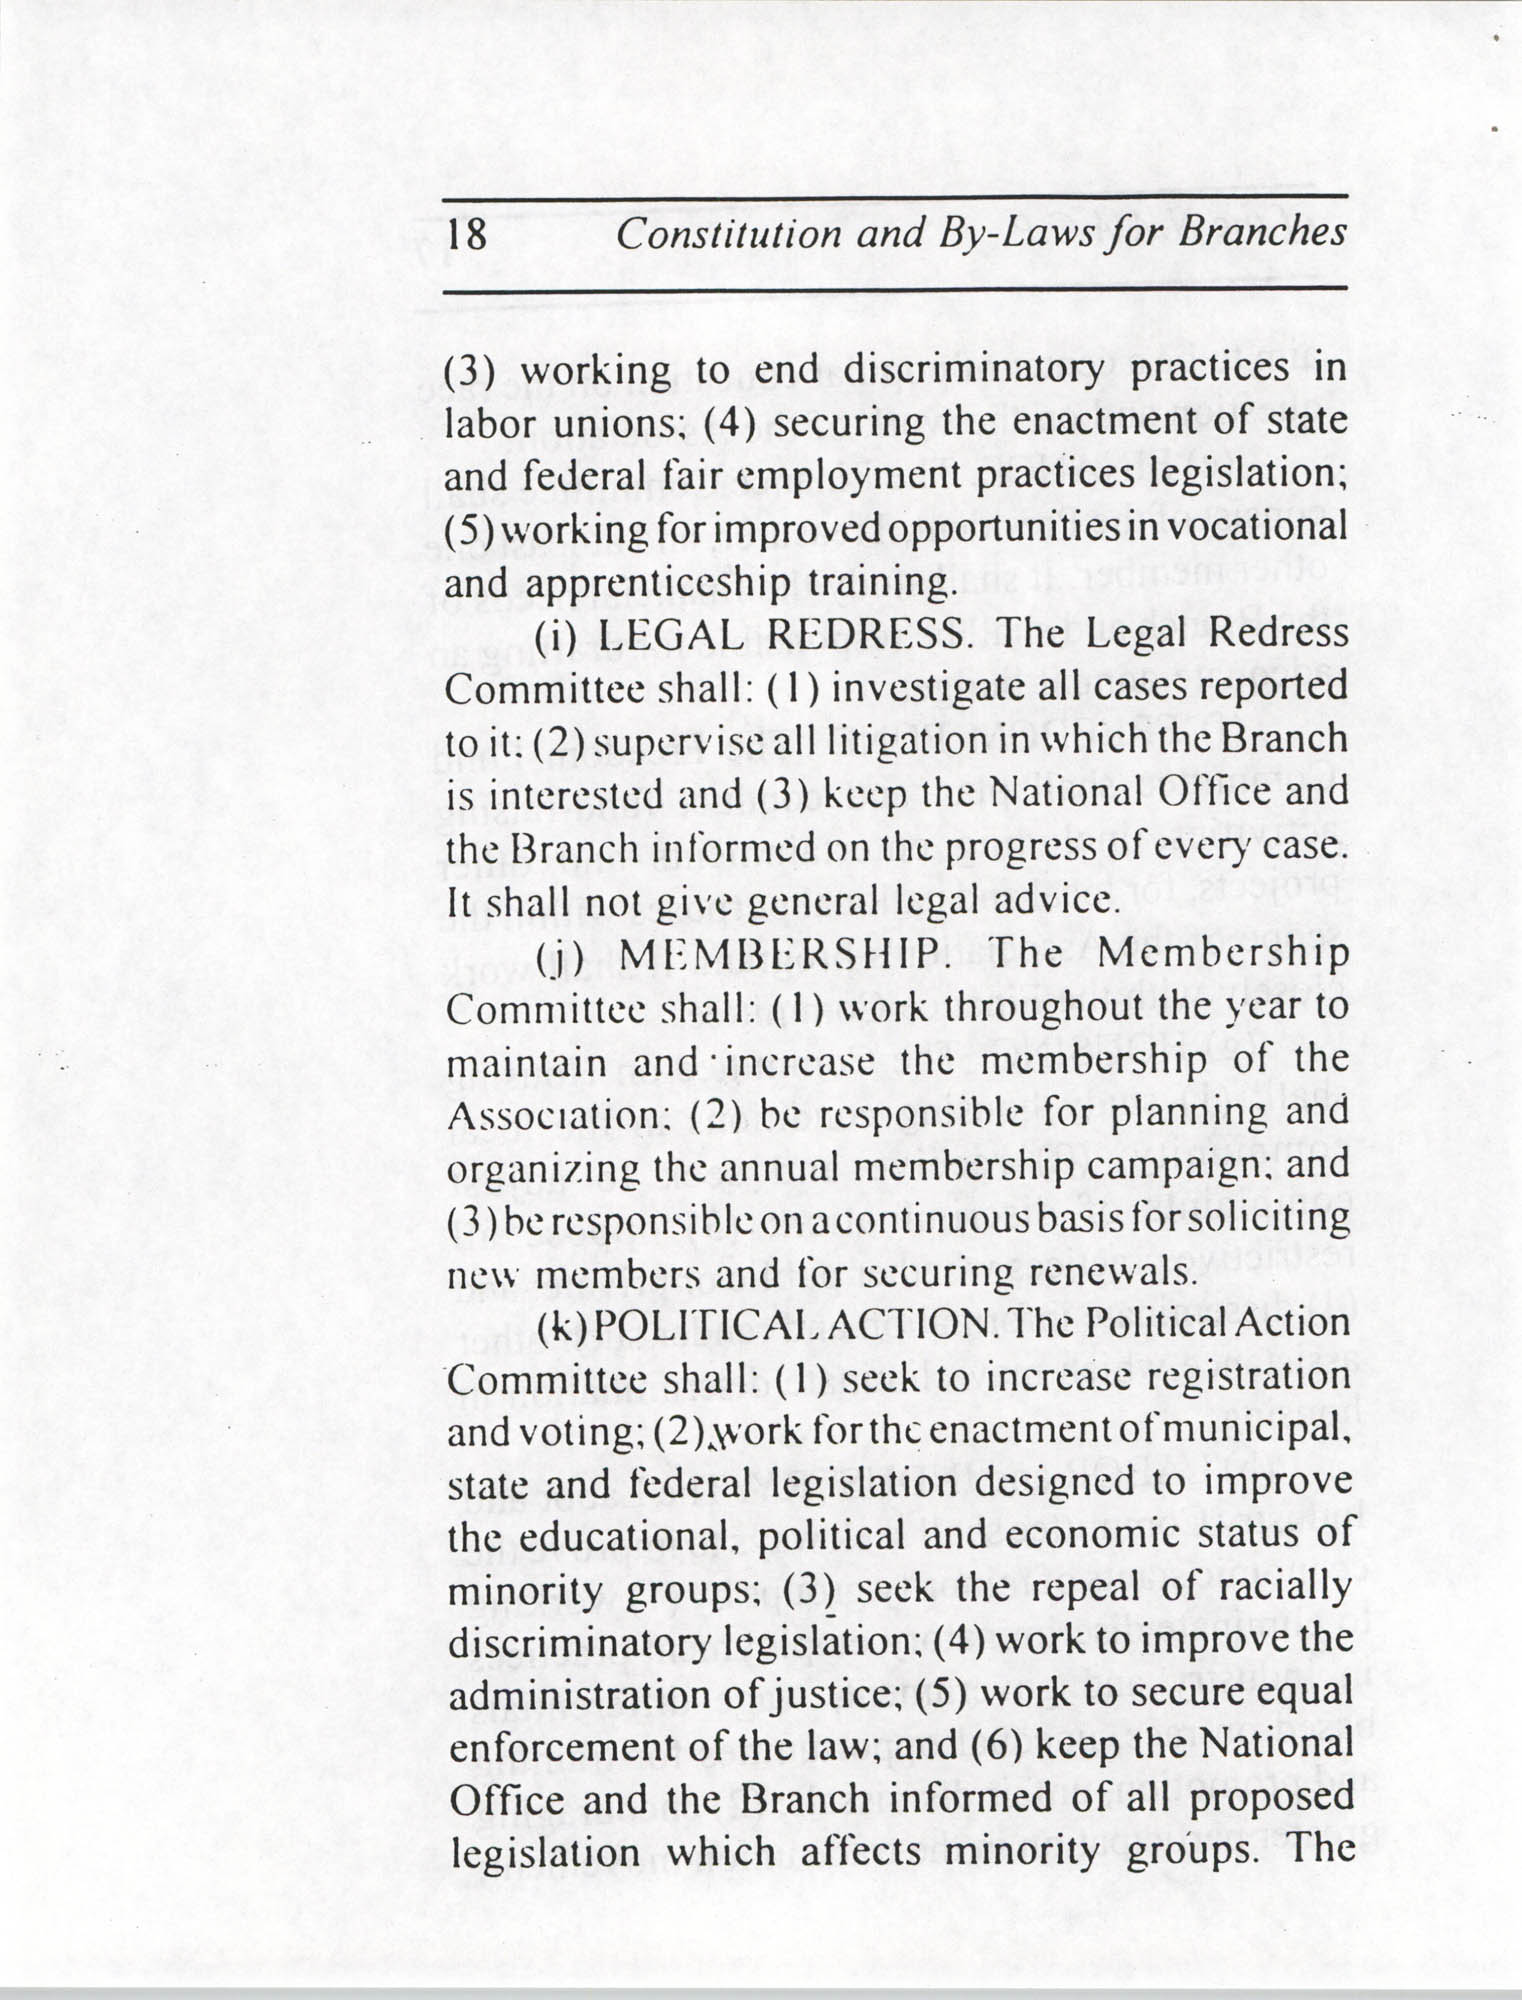 Constitution and By-Laws for Branches of the NAACP, July 1994, Page 18